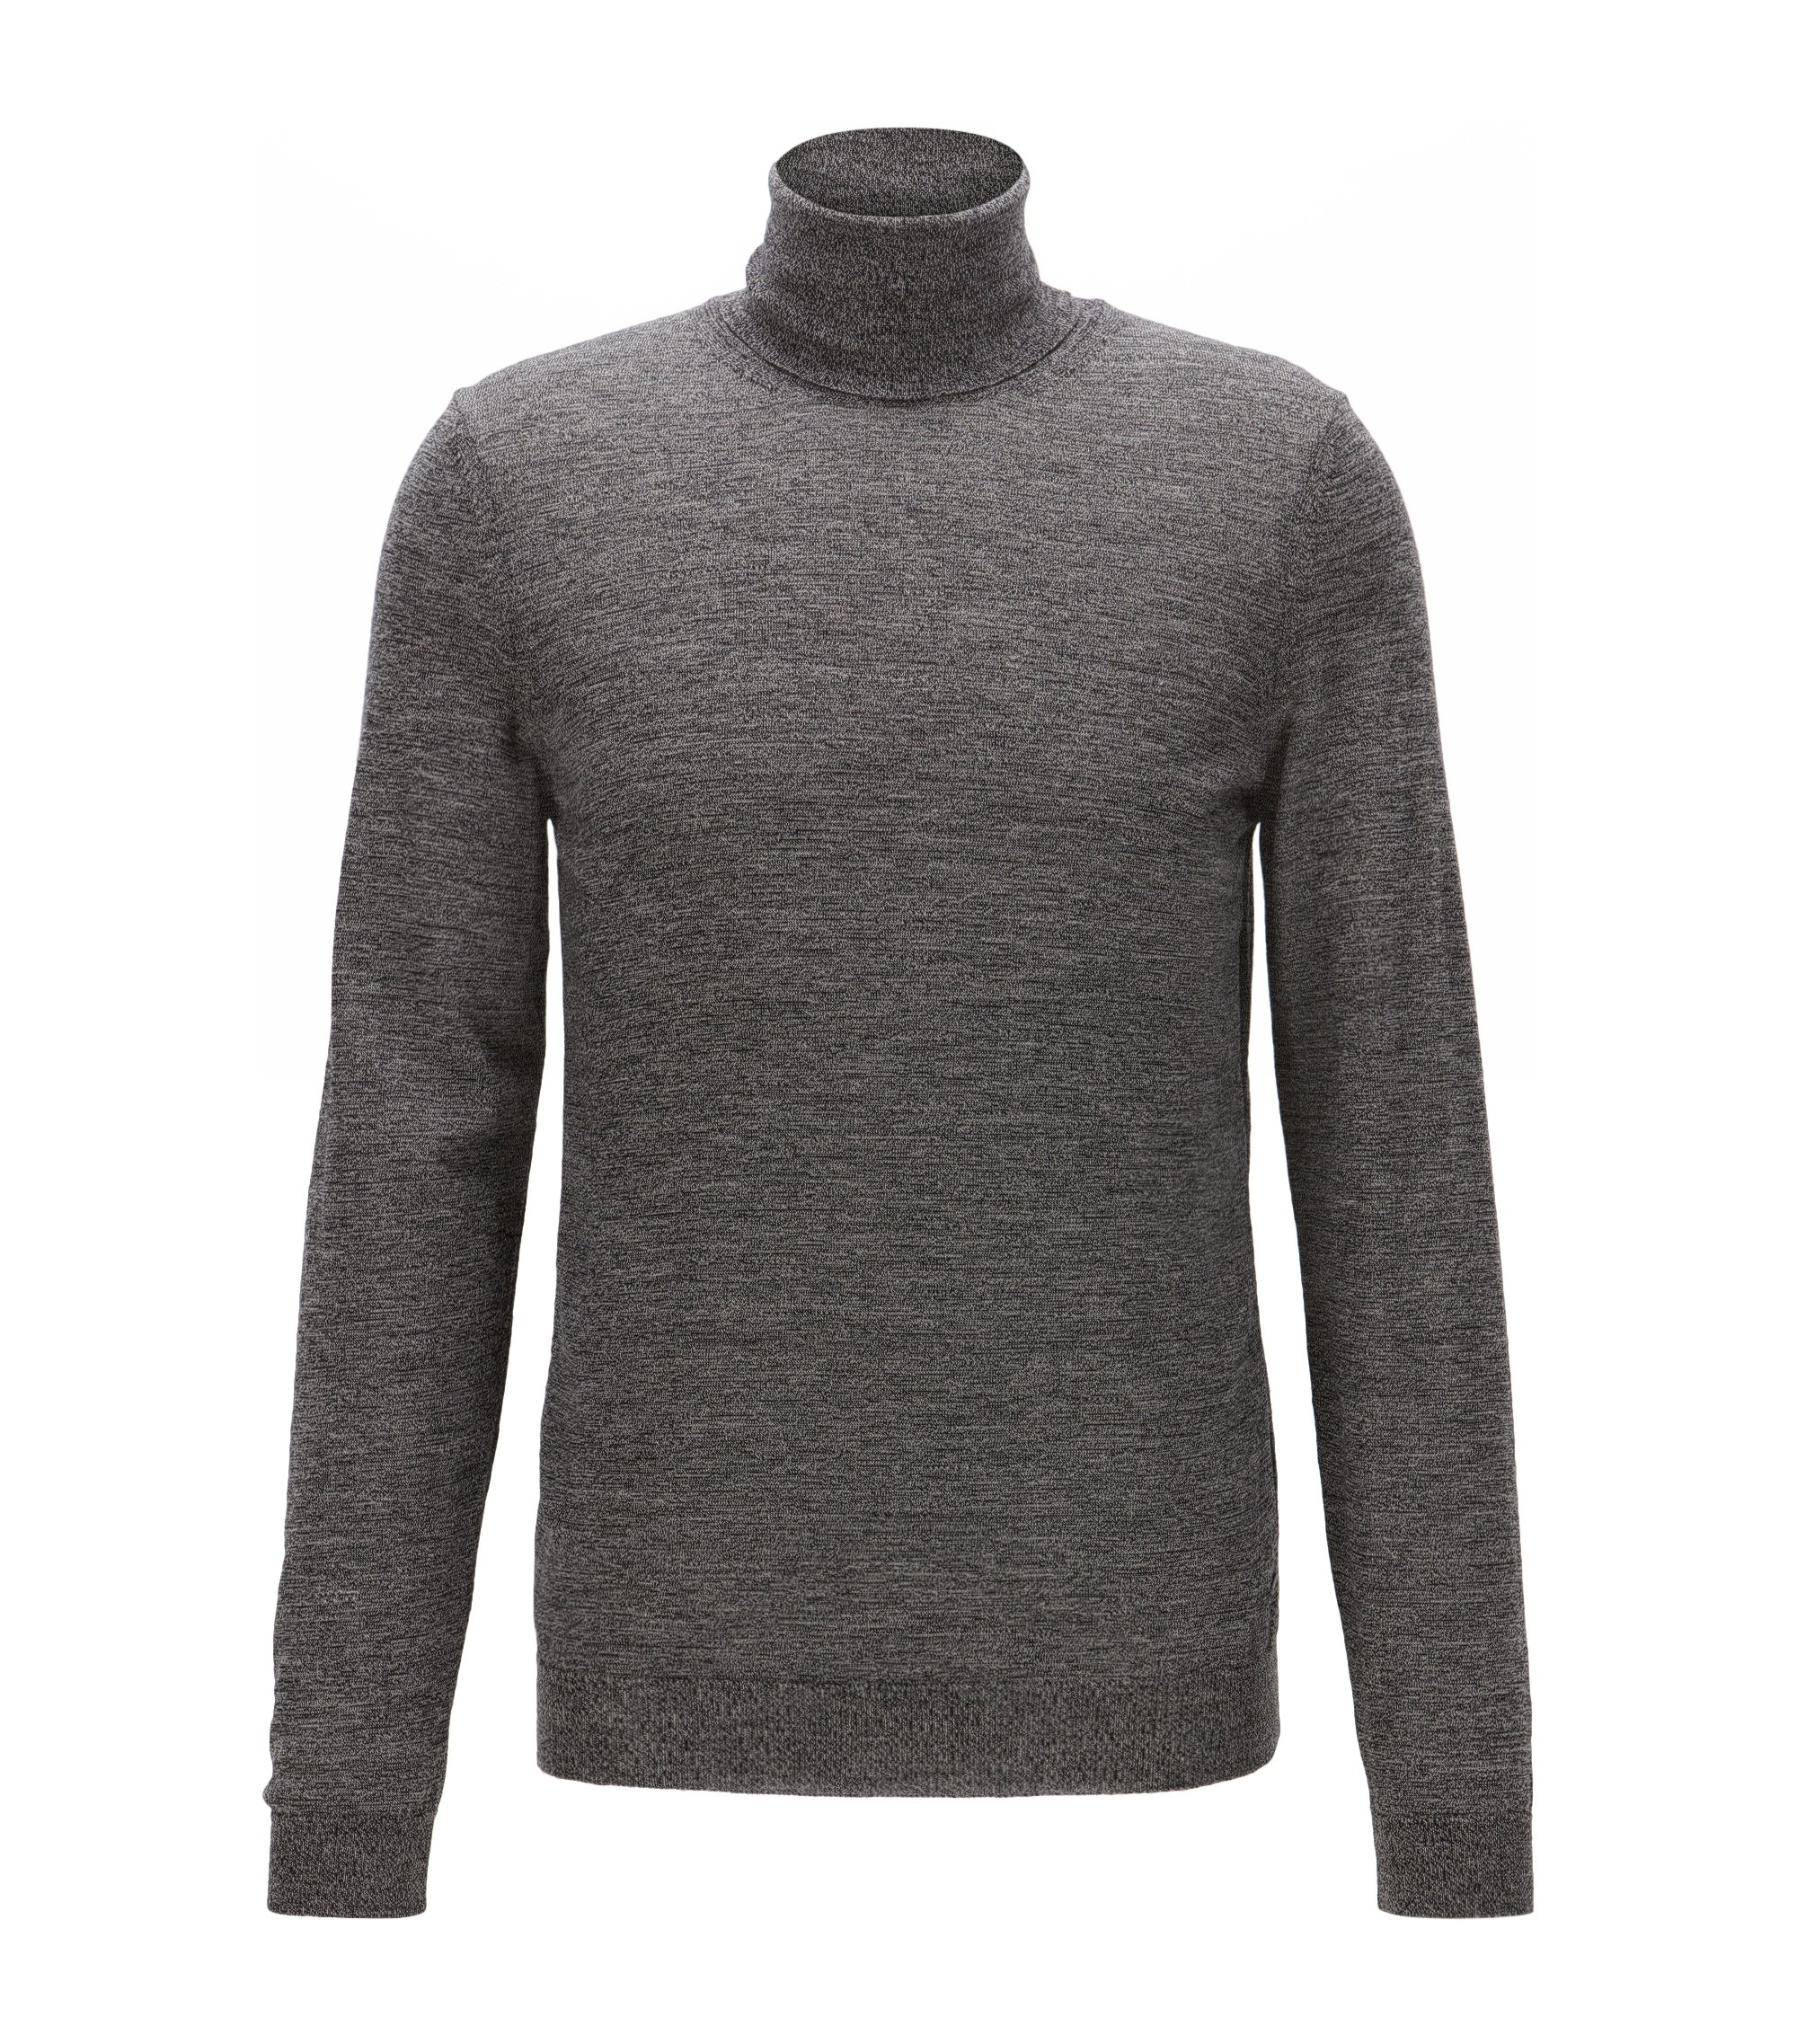 Merino Wool Turtleneck Sweater | Musso N, Grey